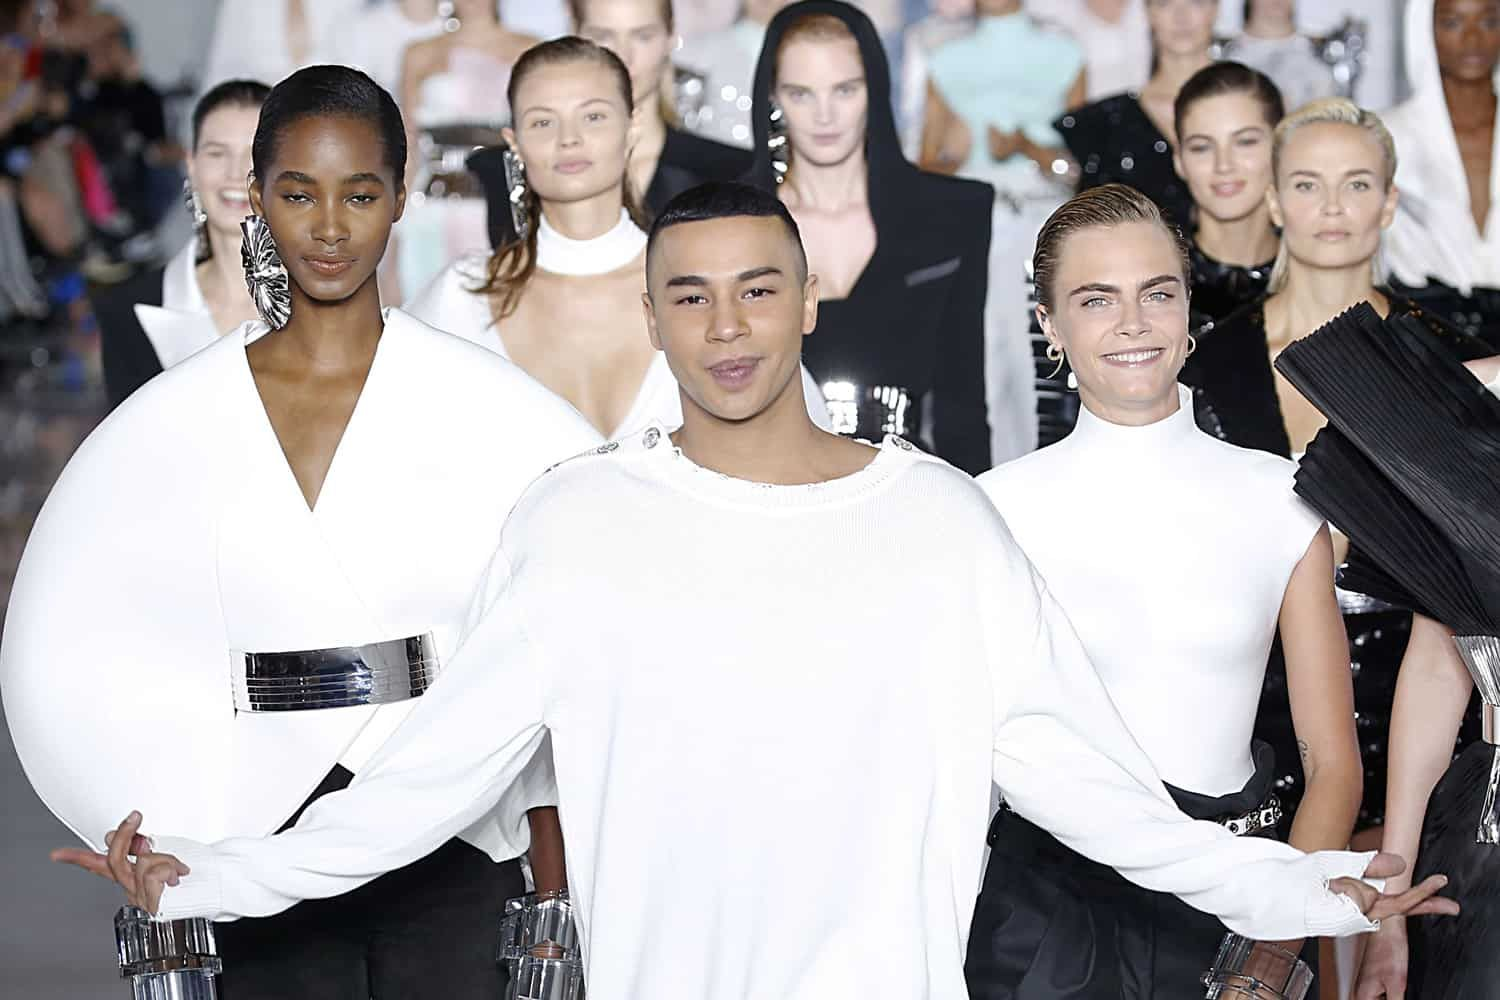 01/07/2021· renowned fashion designer olivier rousteing's partner is a mystery, and he is openly gay. Fashion & Politics With Olivier Rousteing, '90s Supers ...